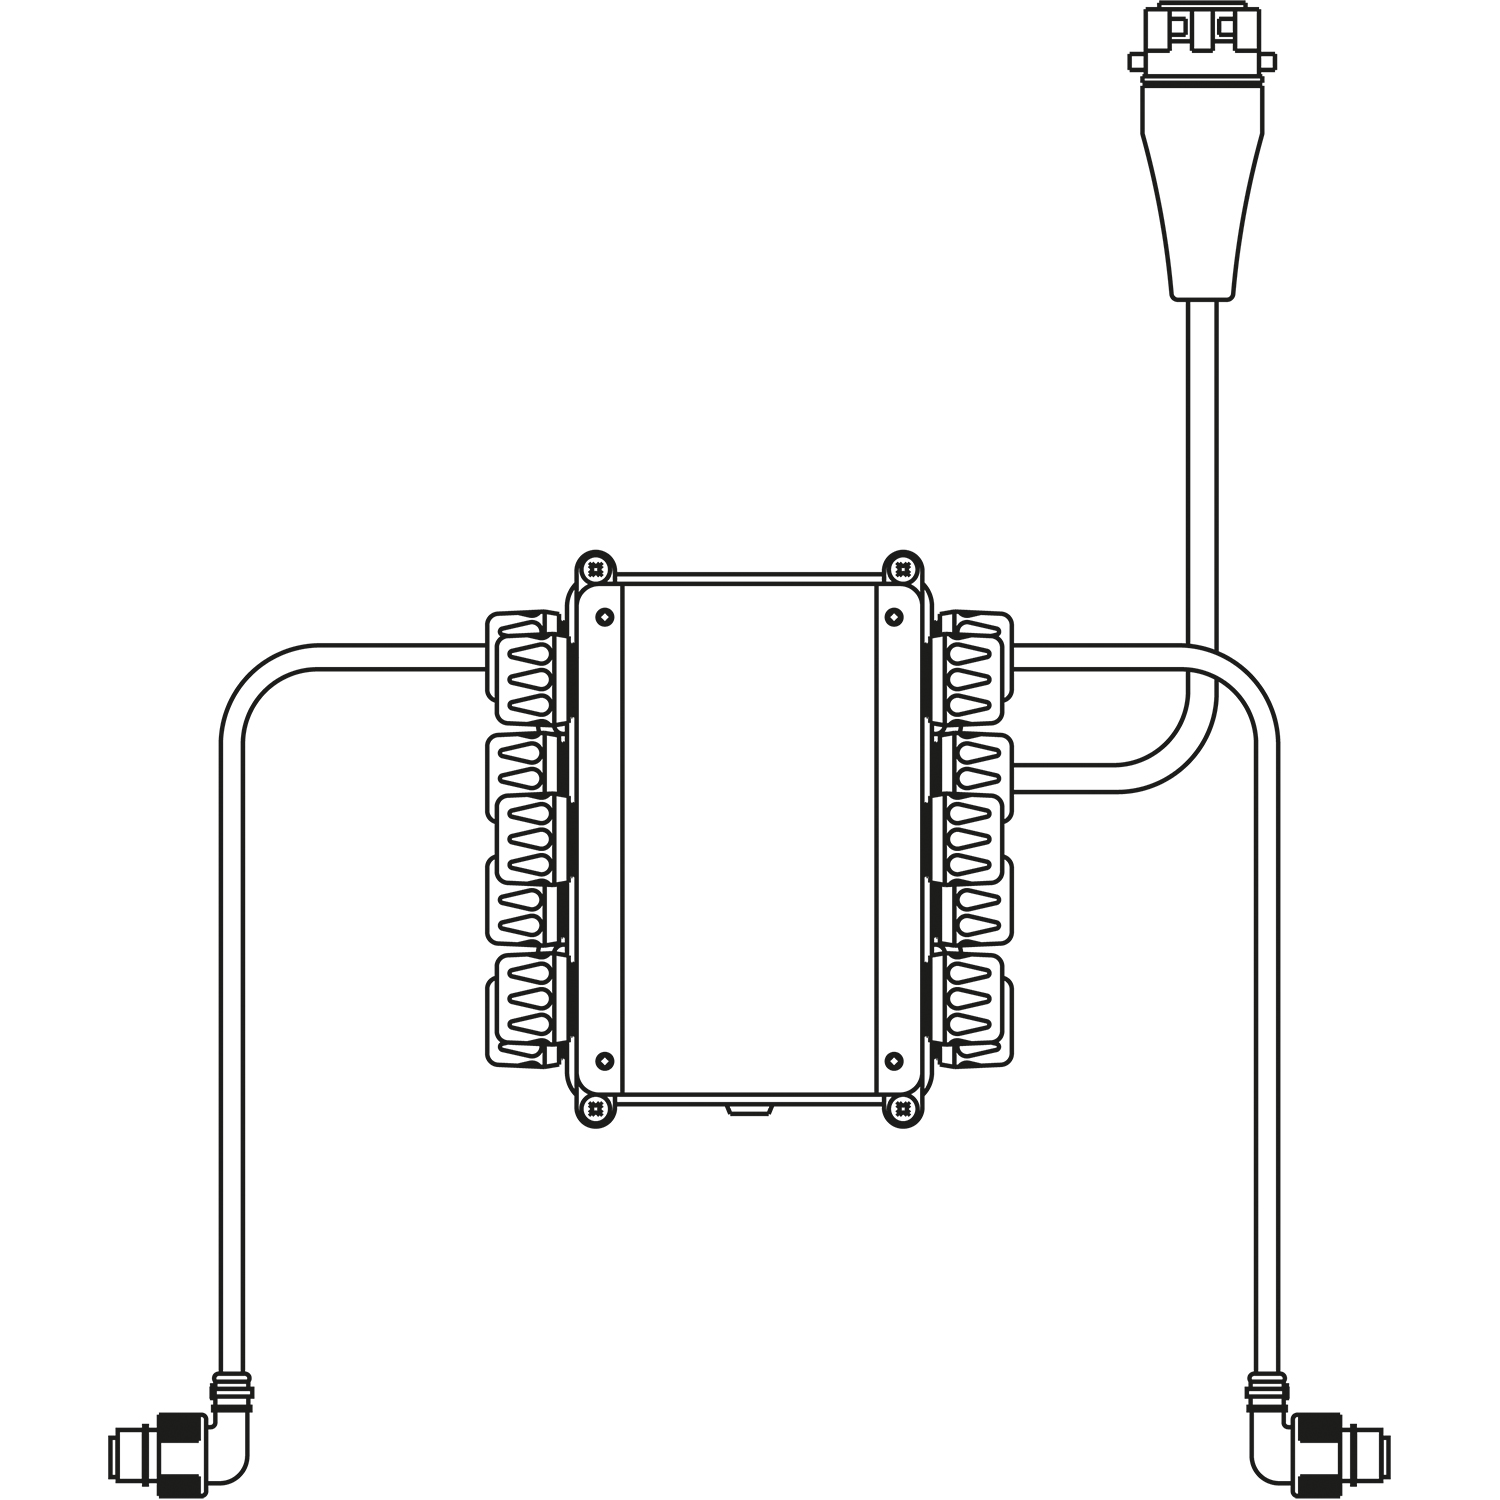 Distribution Box For Lighting System Ass1 Wabco Tce 24 V Diagram Of